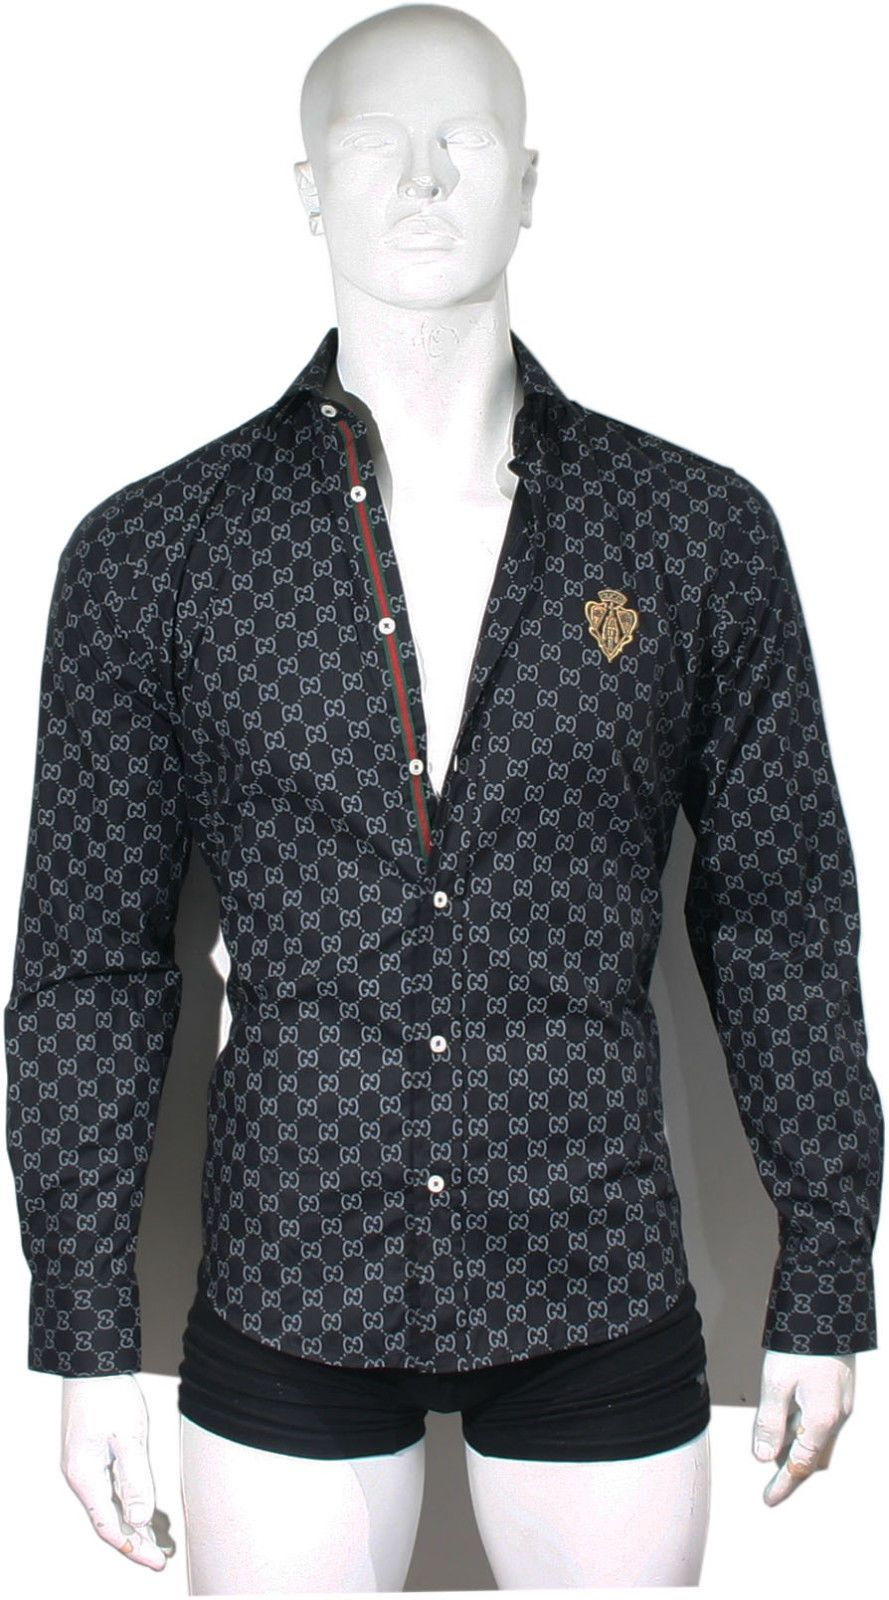 222d06281a3 Black Color New GG Monogram Design Men Gucci Dress Shirt M L XL ...